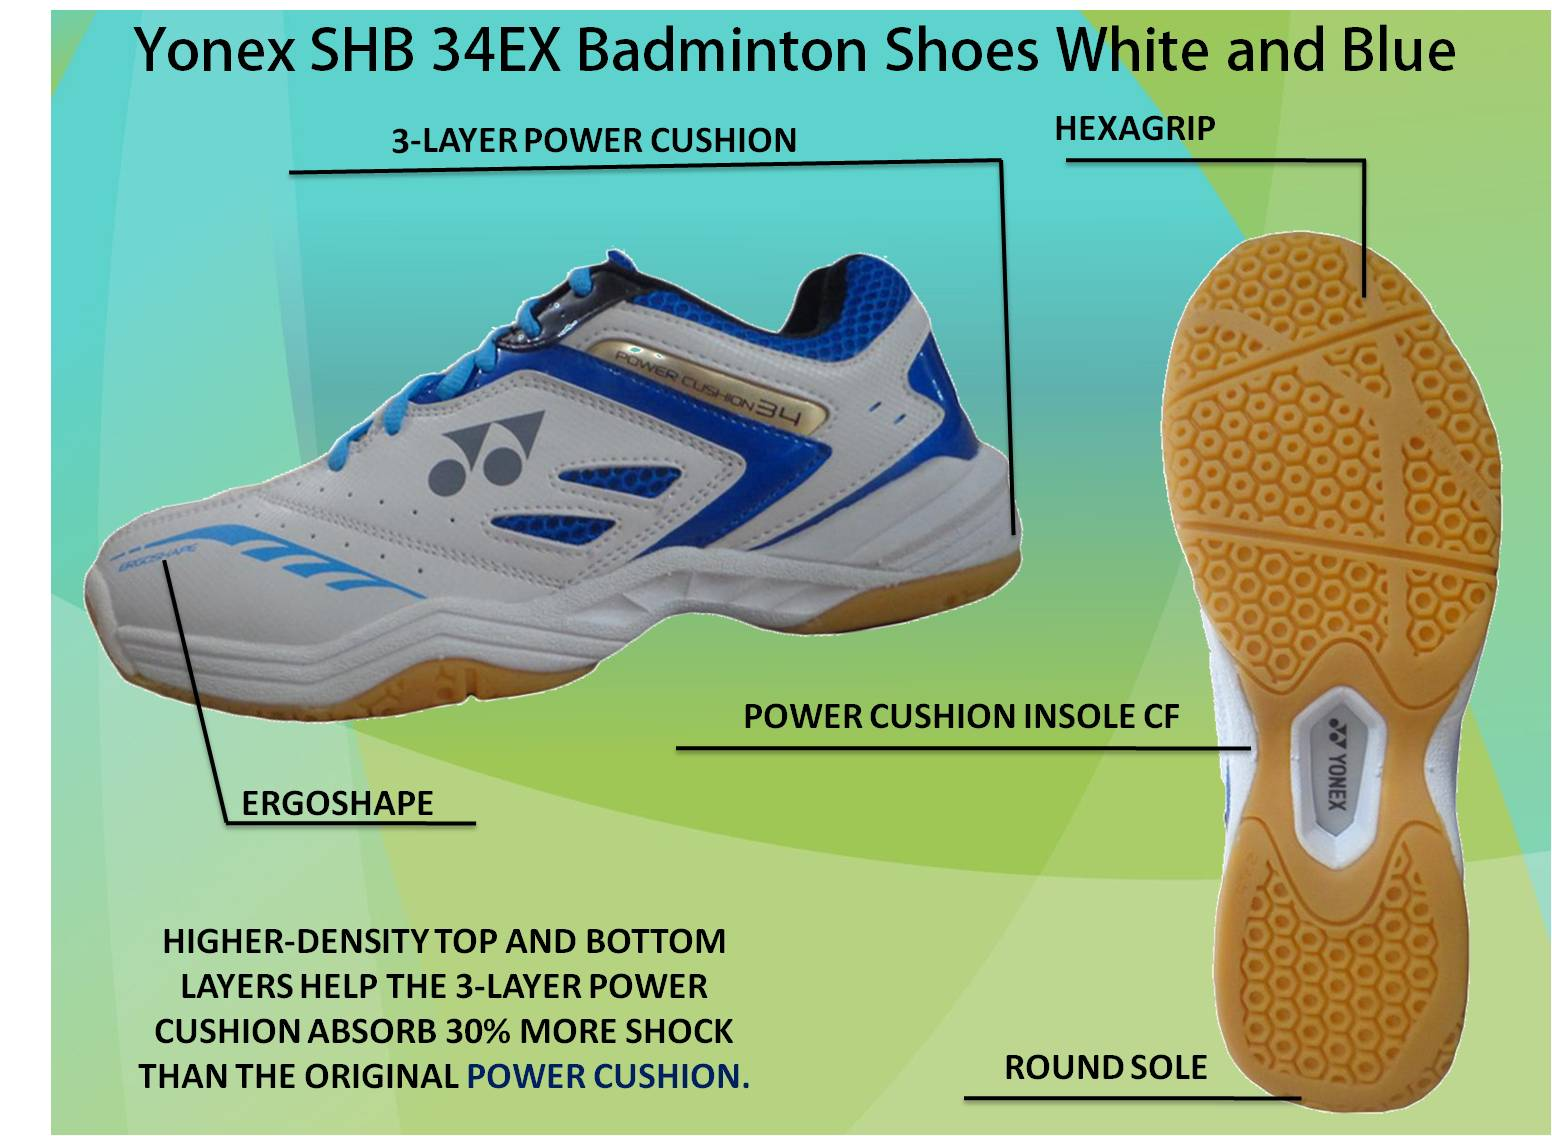 Yonex SHB 34 EX Badminton Shoes White and Blue